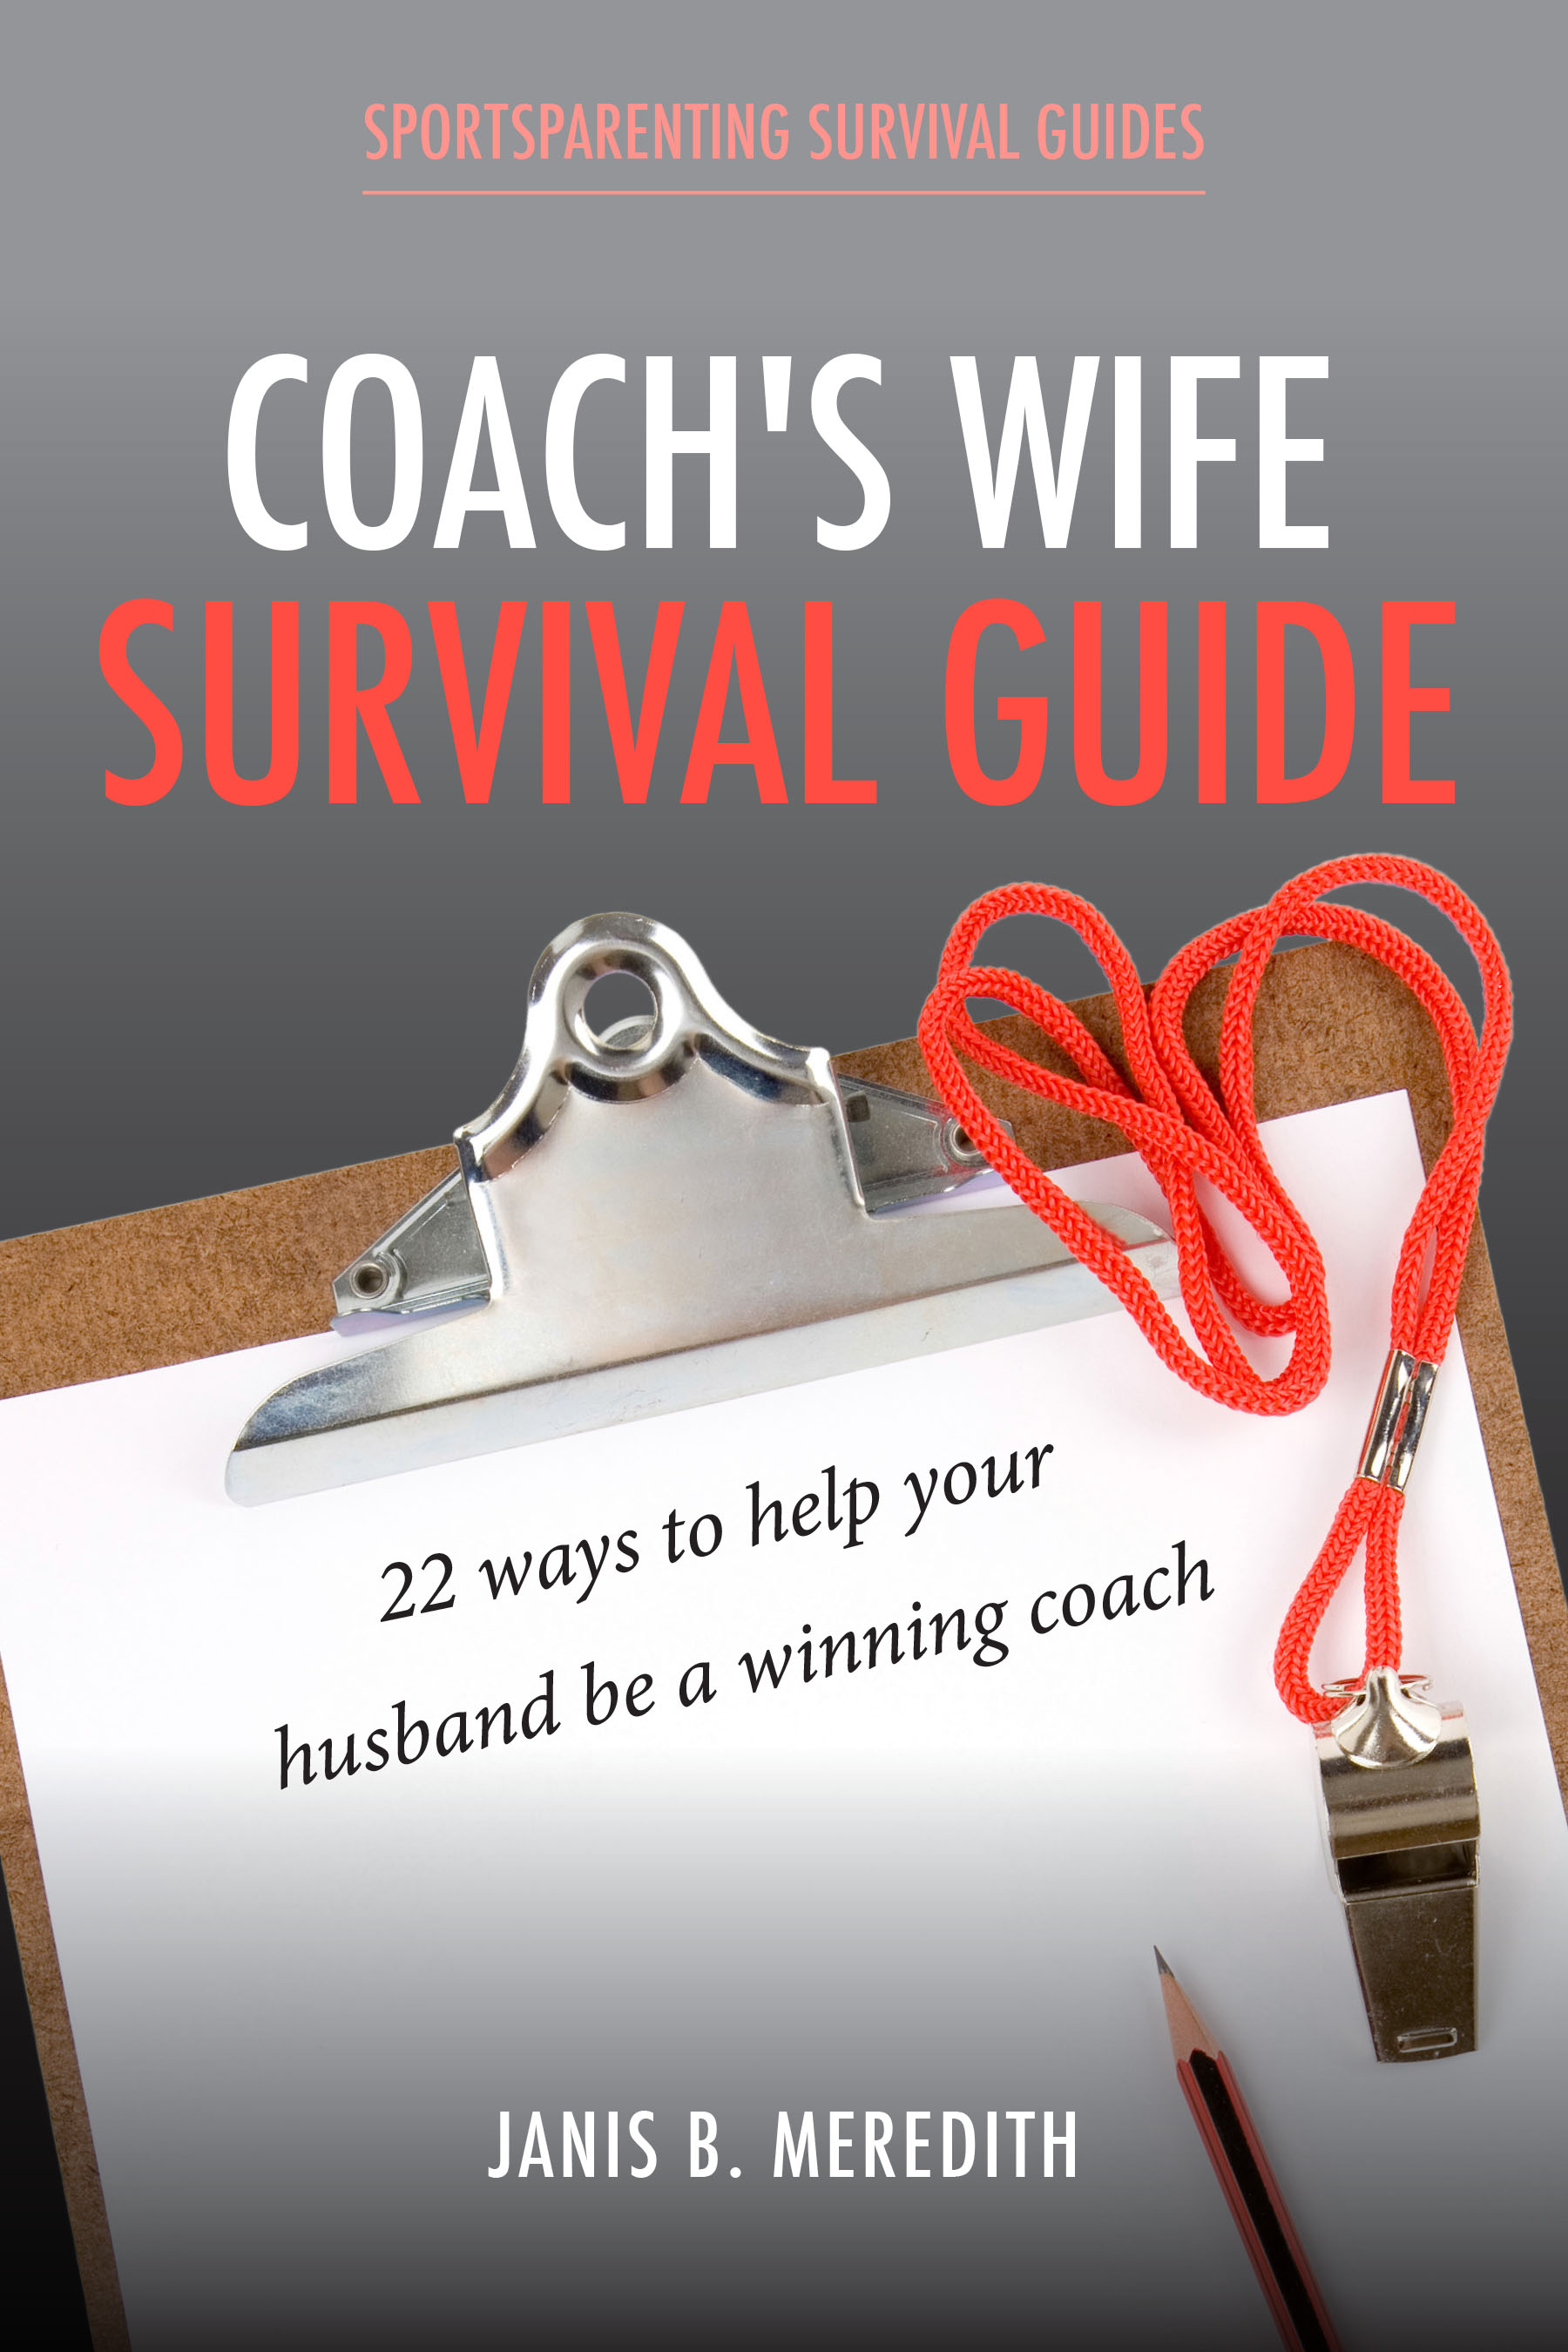 Coach's Wife Survival Guide